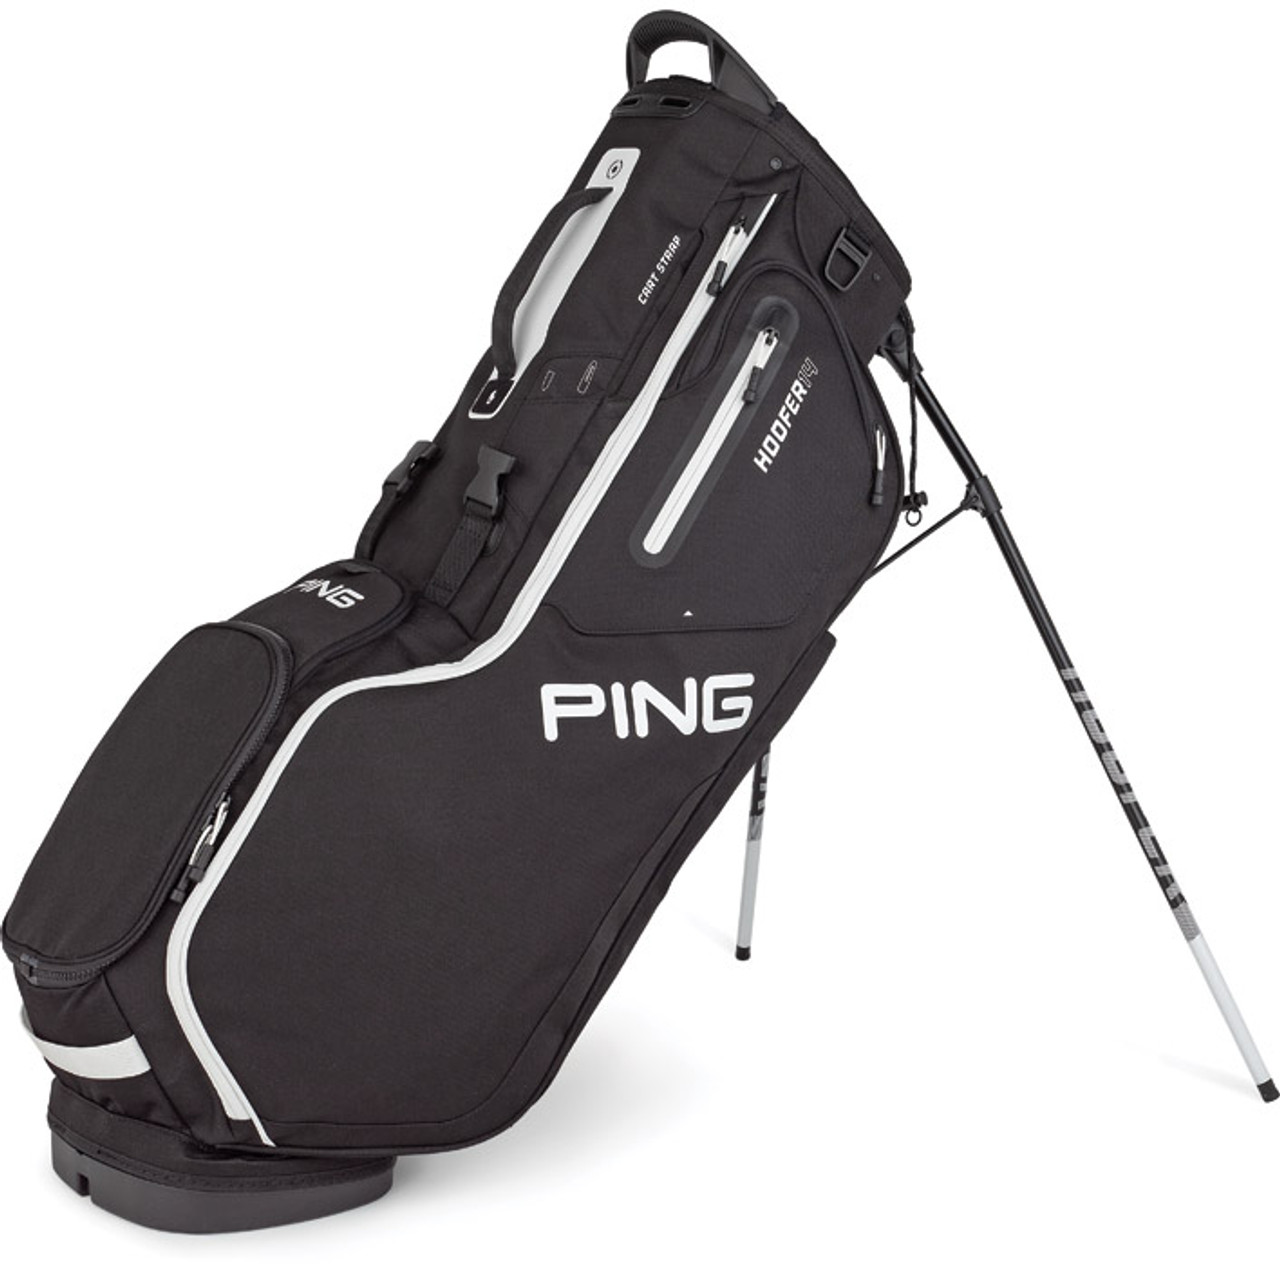 Ping Hoofer 14 Personalized Stand Bags - Black